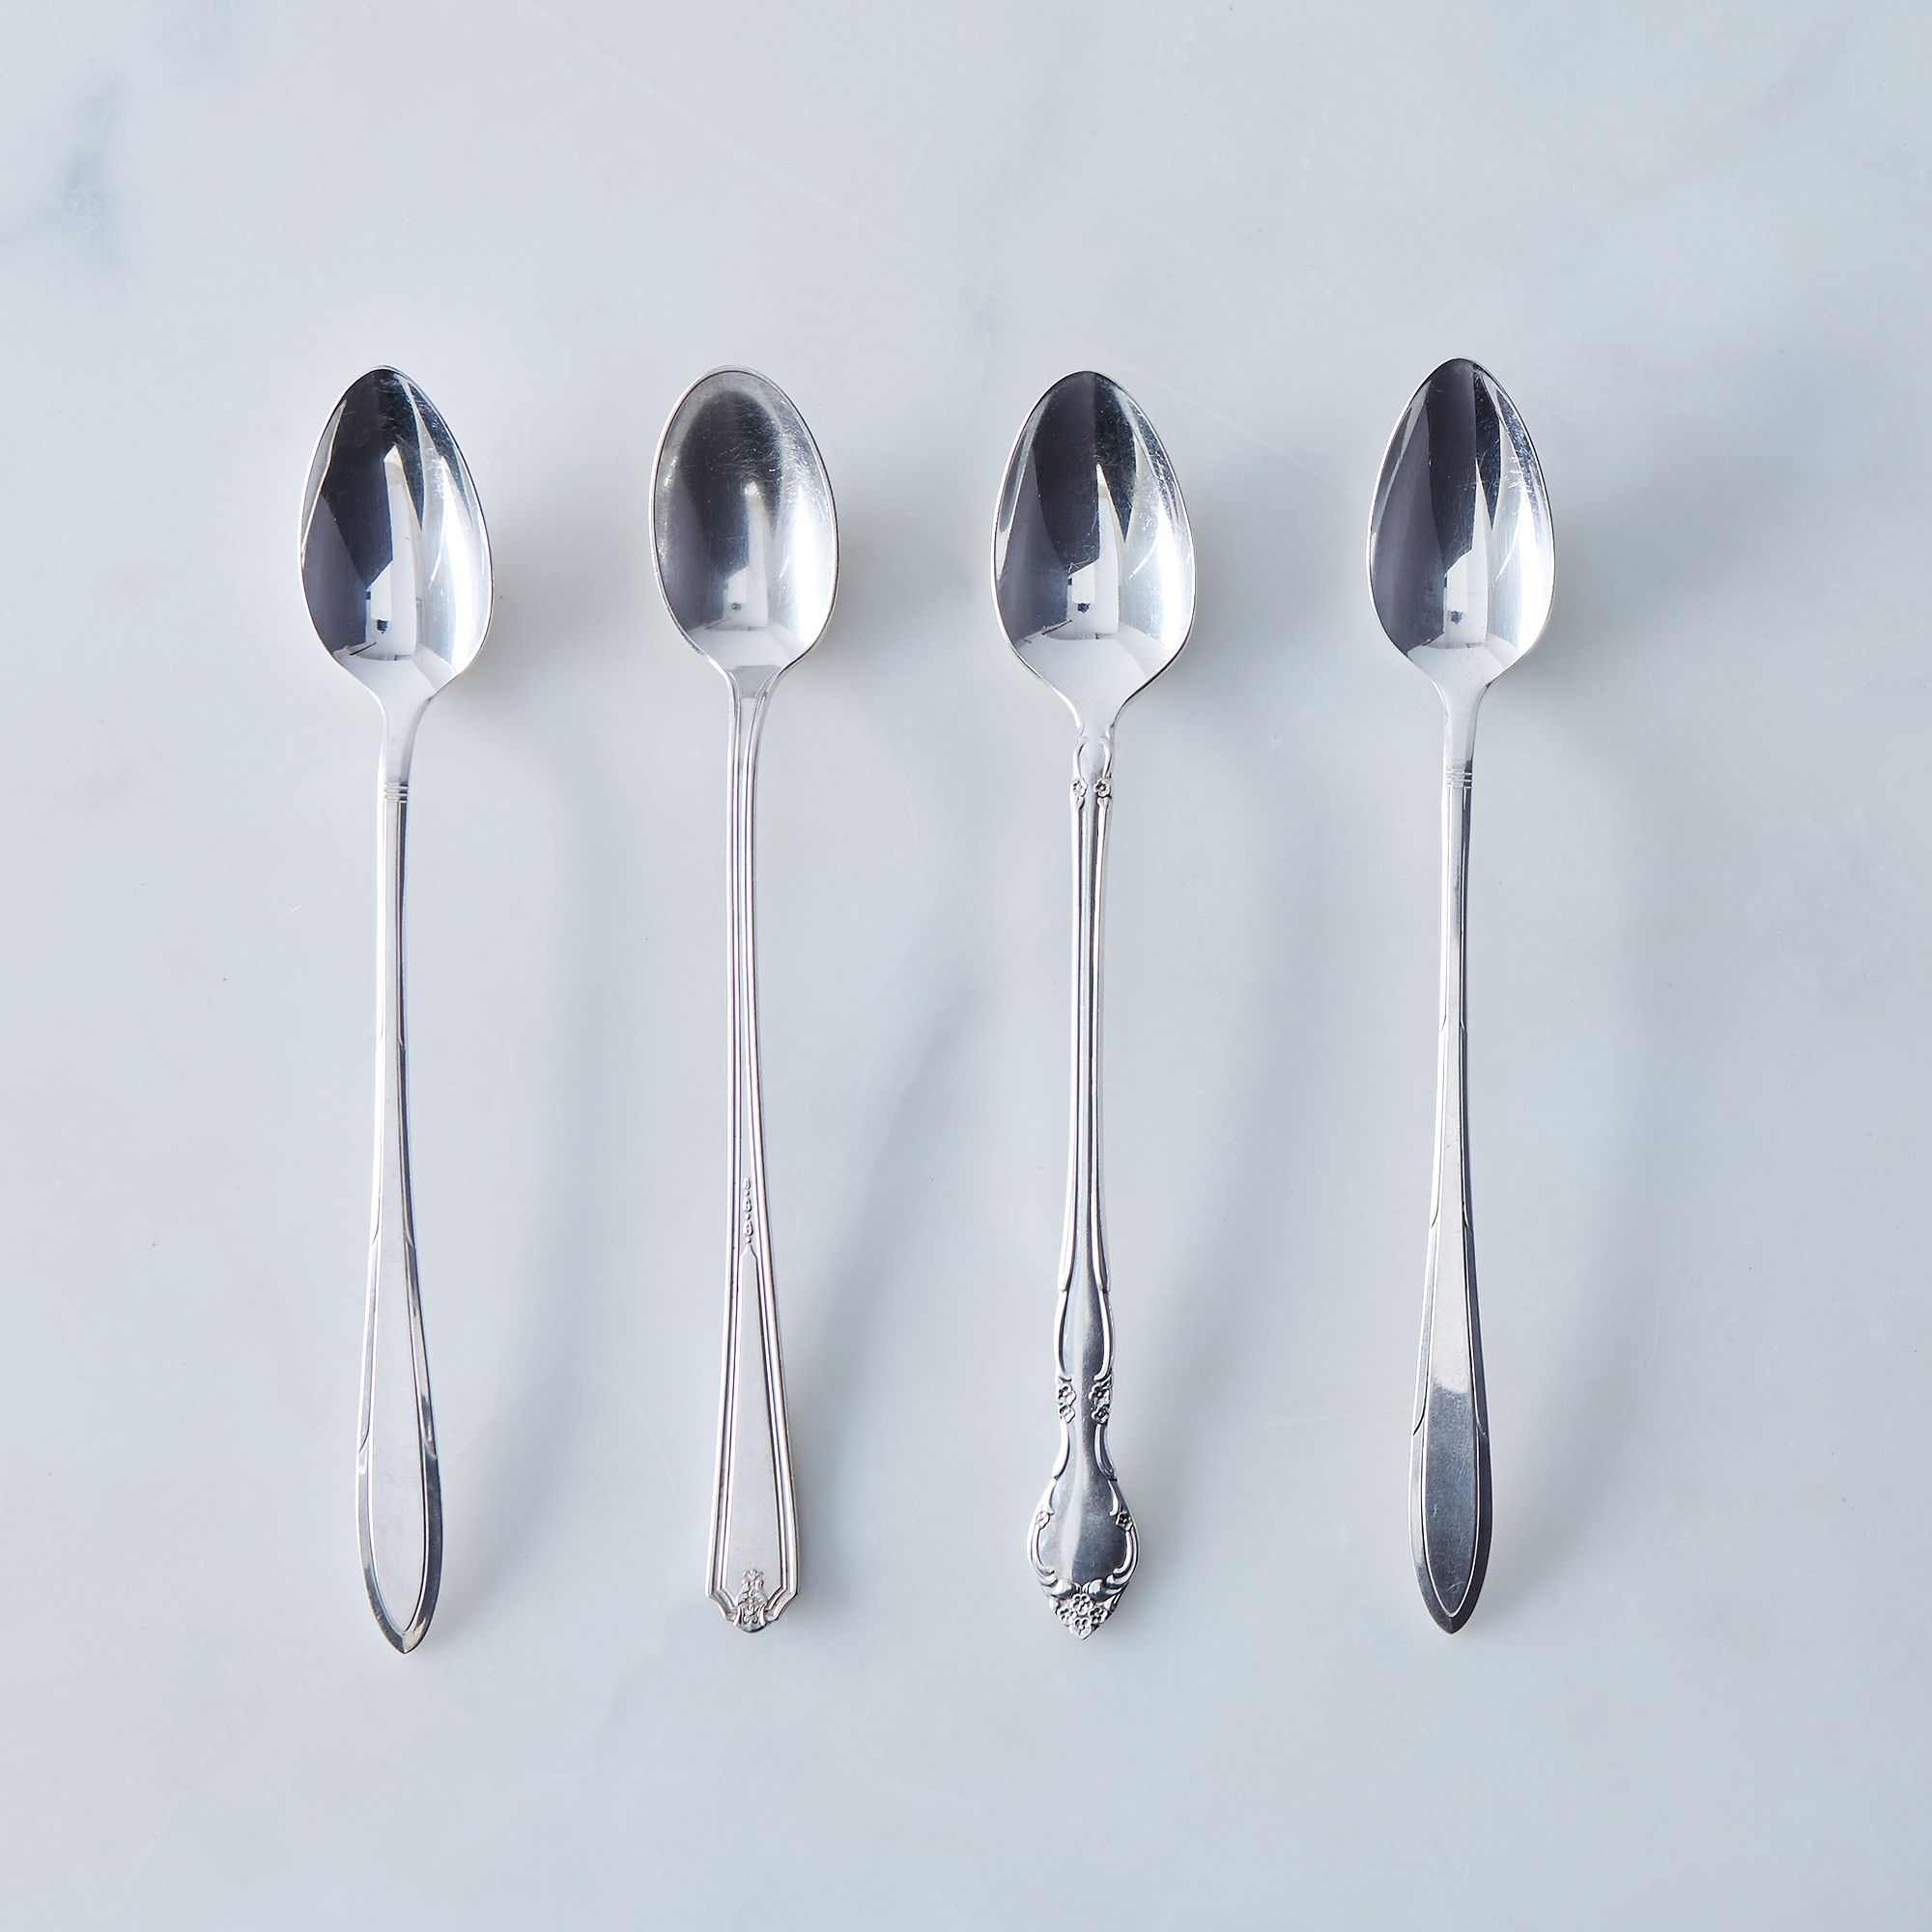 Vintage Iced Tea Spoons (set Of 4)